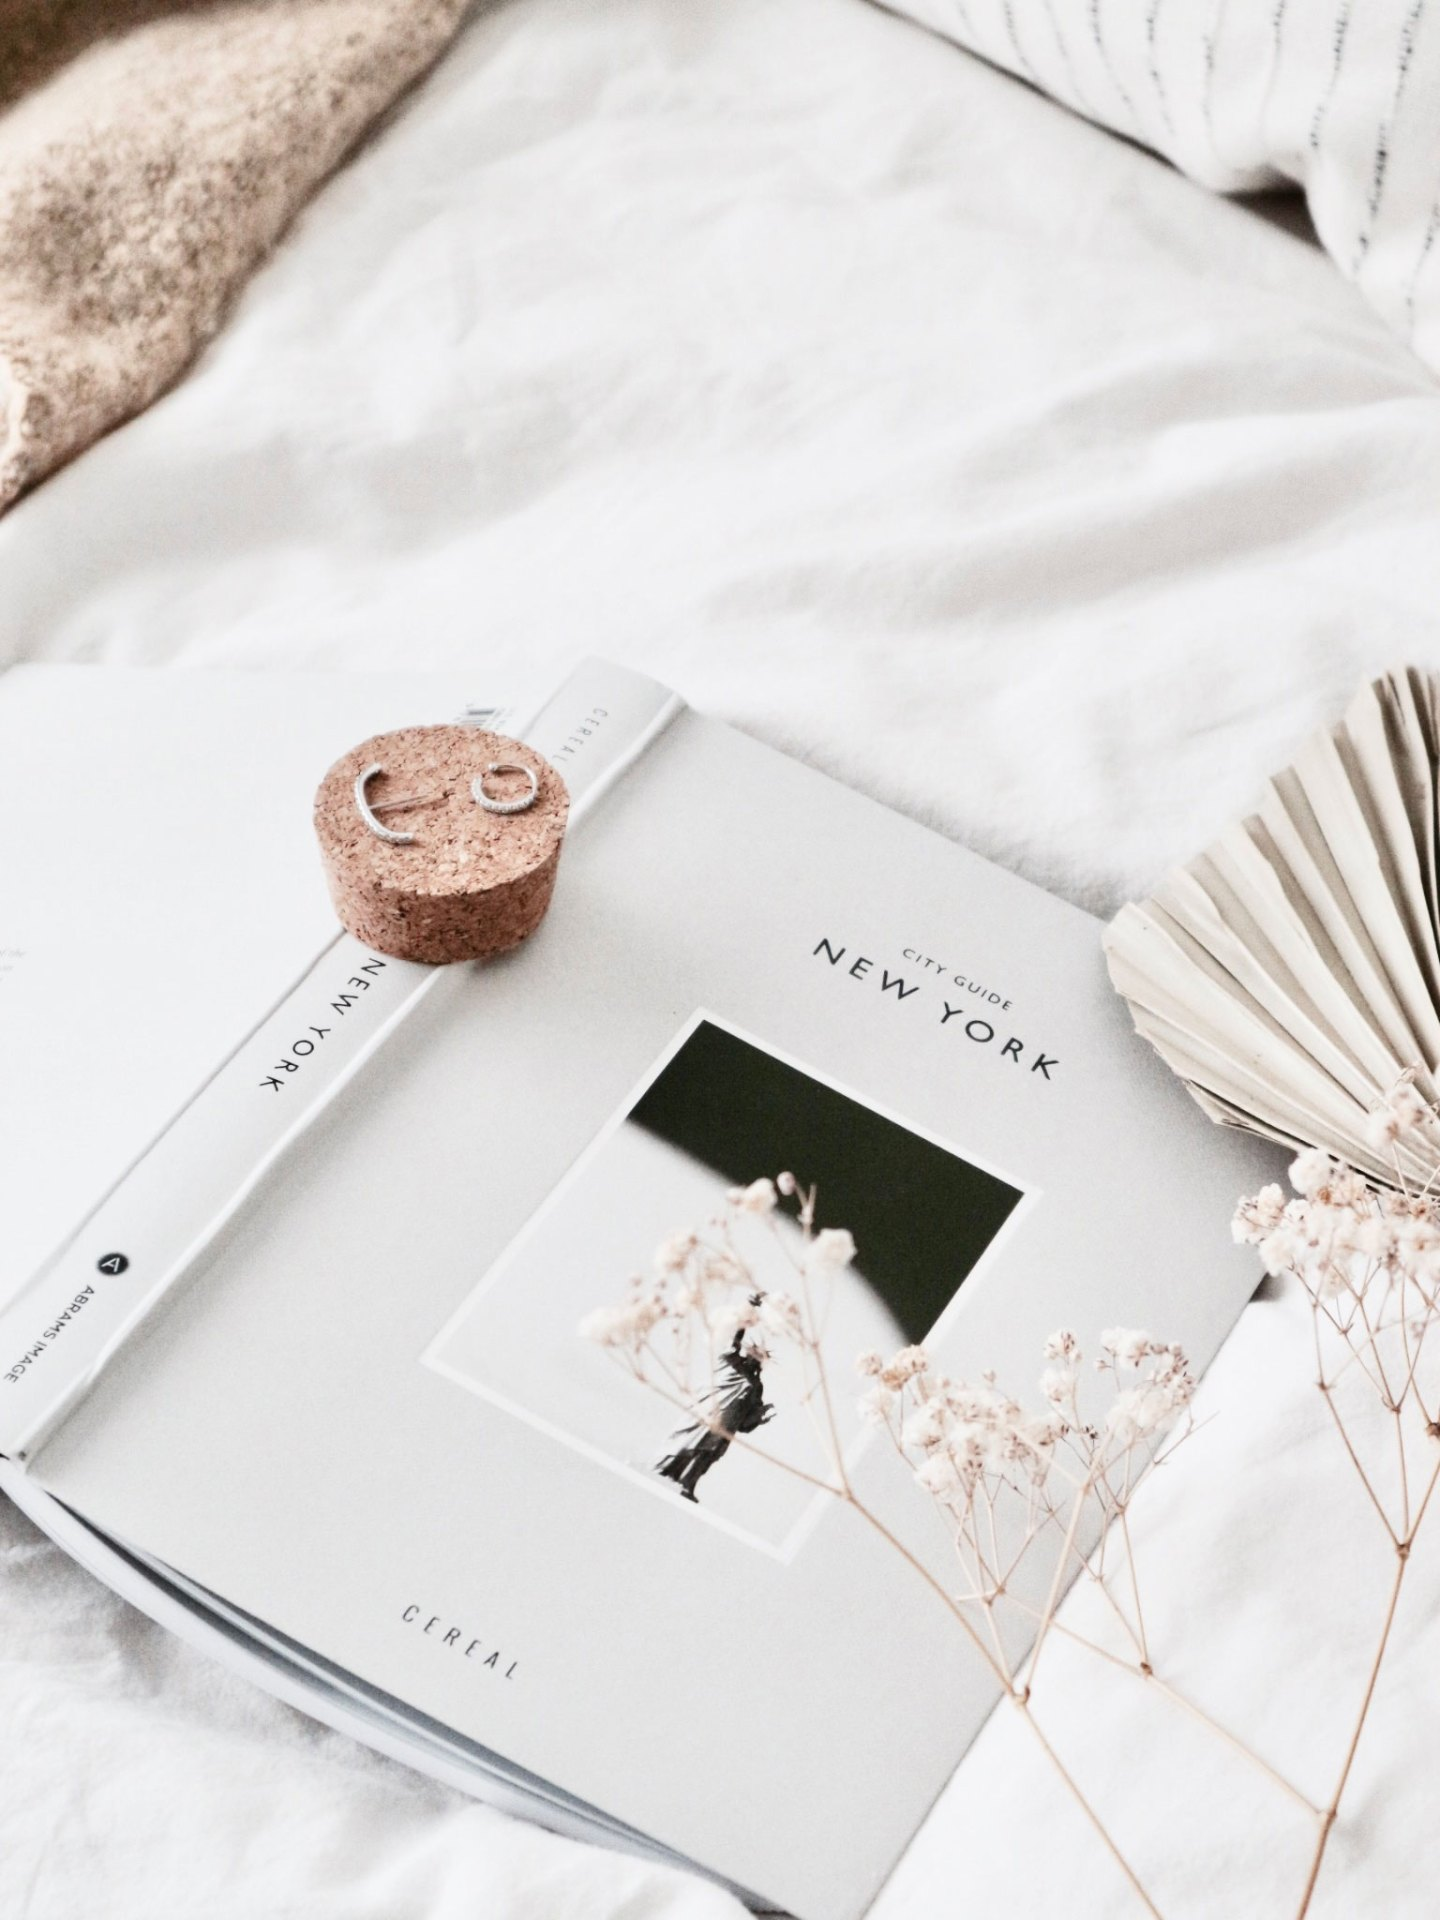 Unique, Minimal & Chic Jewelry Pieces & Brands I Am Loving | Inspiration: Jewelry